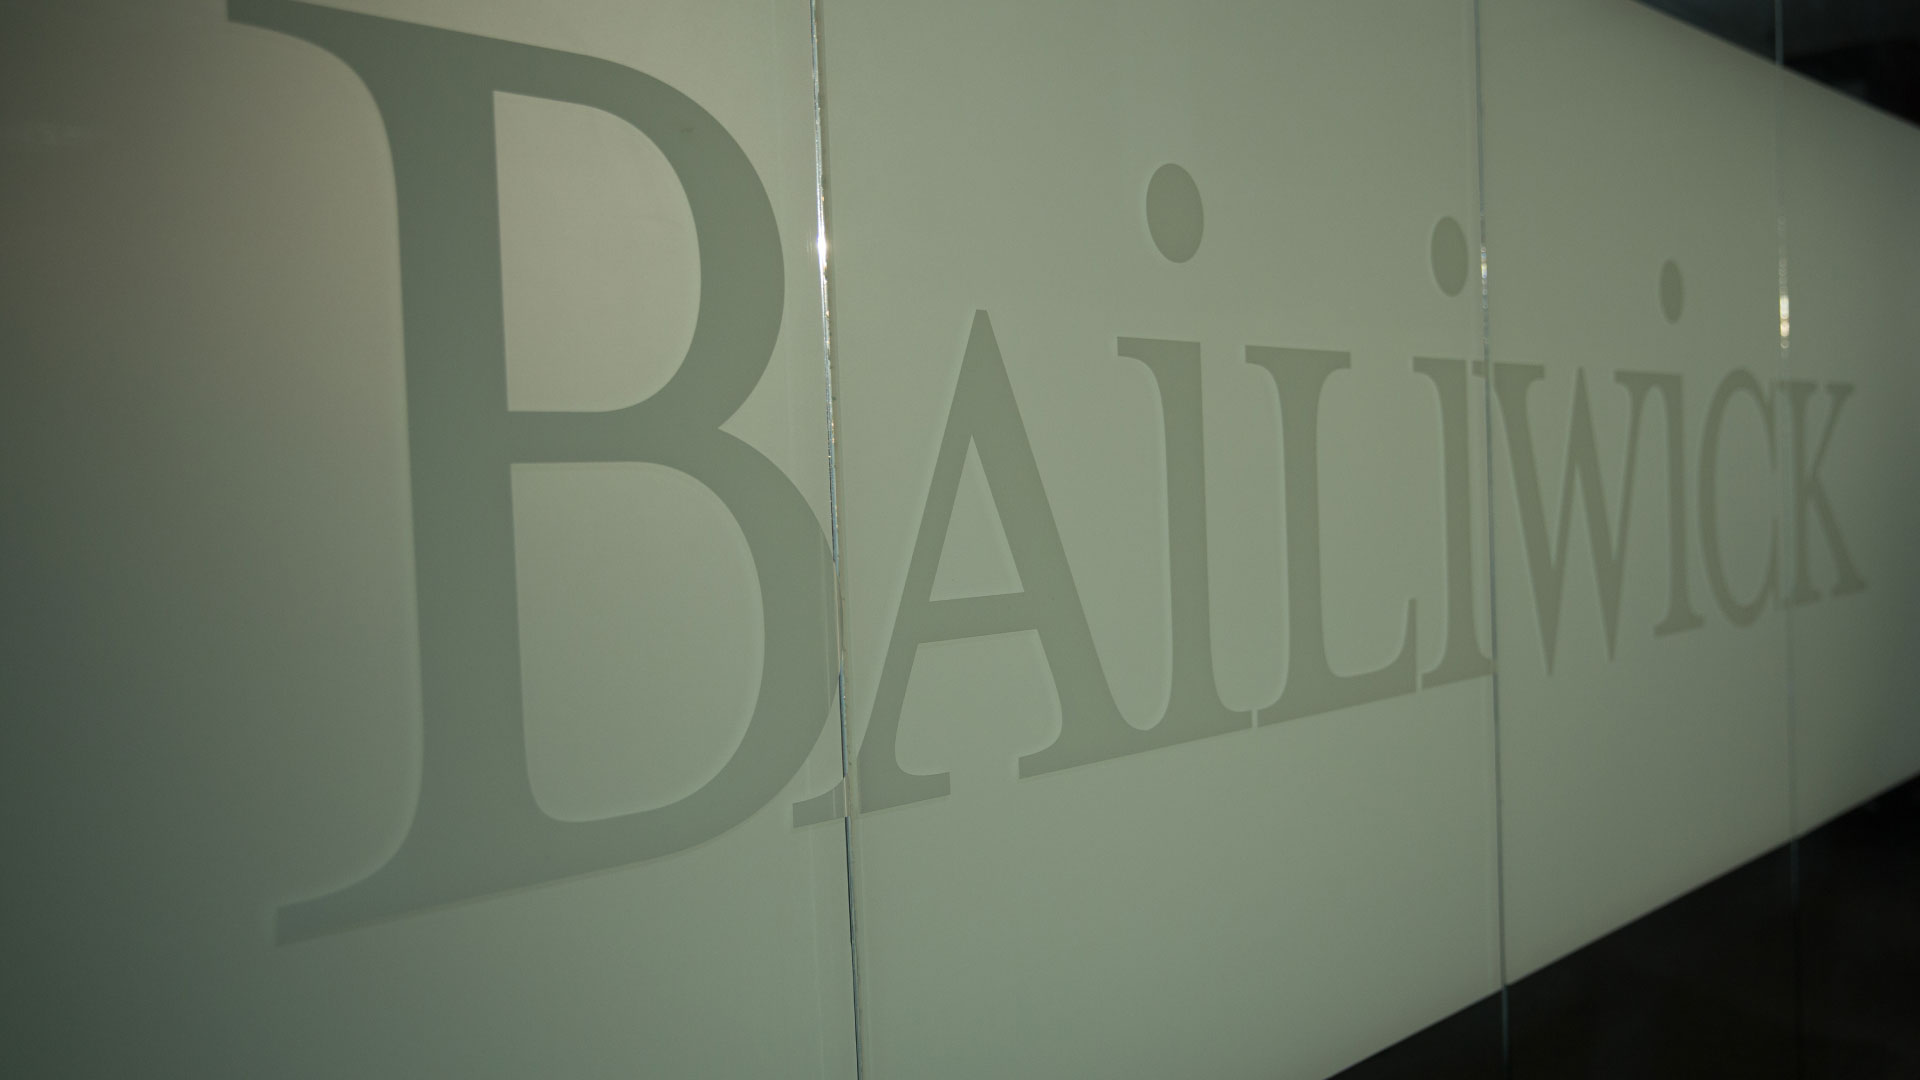 Etched Bailiwick logo on glass windows